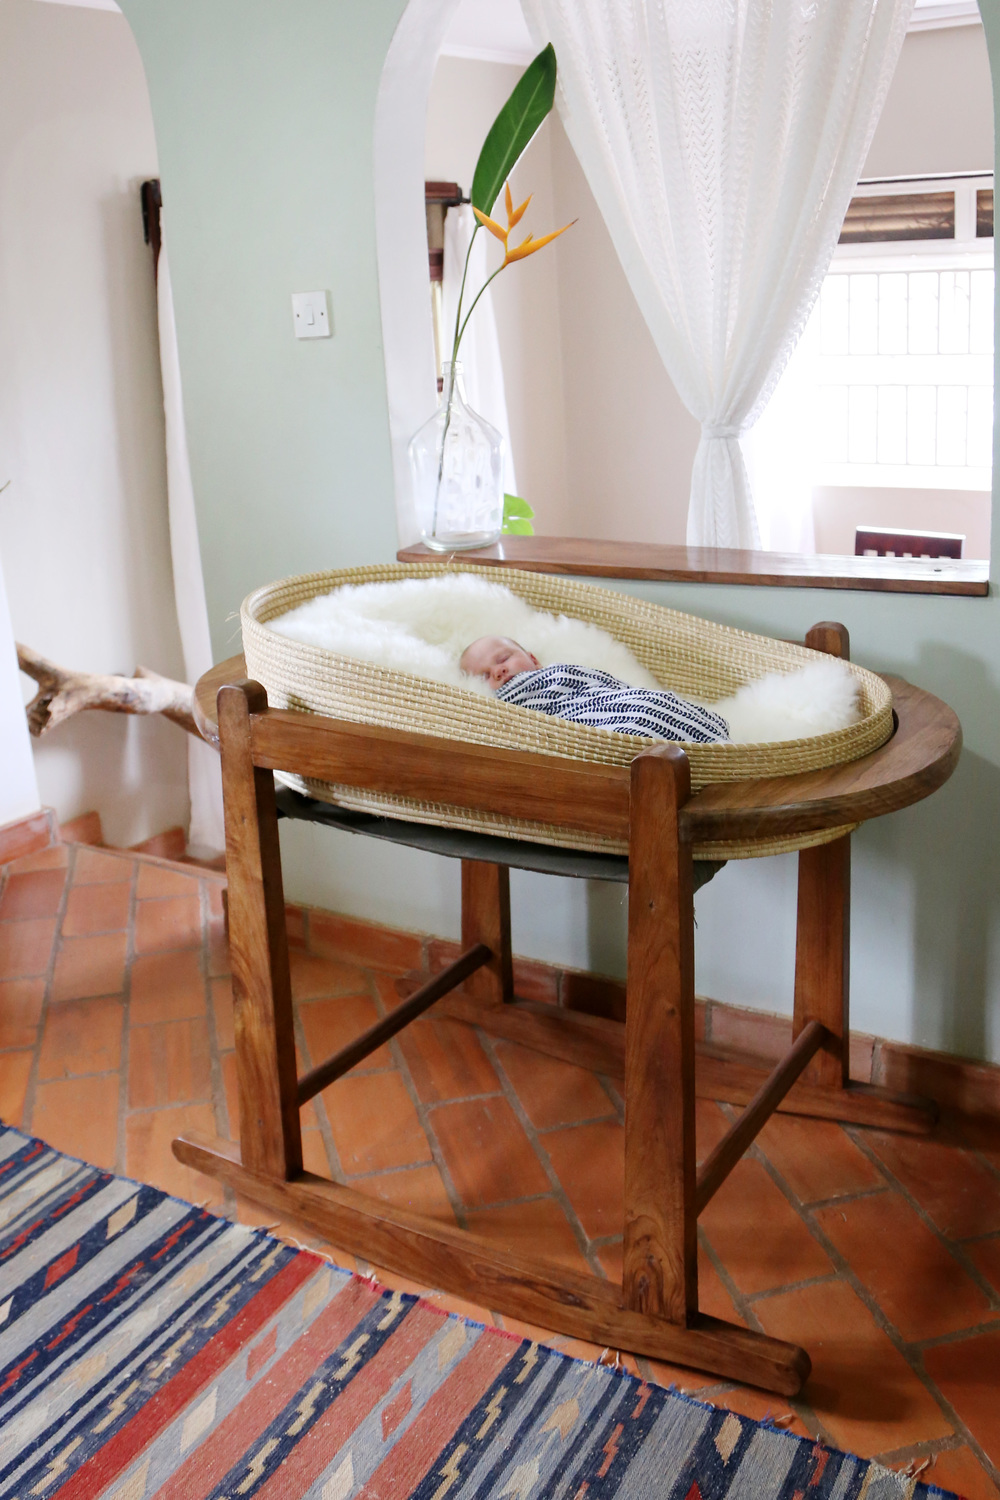 Bassinet stand made by a local carpenter and Moses basket woven in western Uganda.  Both are available at  Baby Lionheart.  Sheepskin rug from  Ecowool .